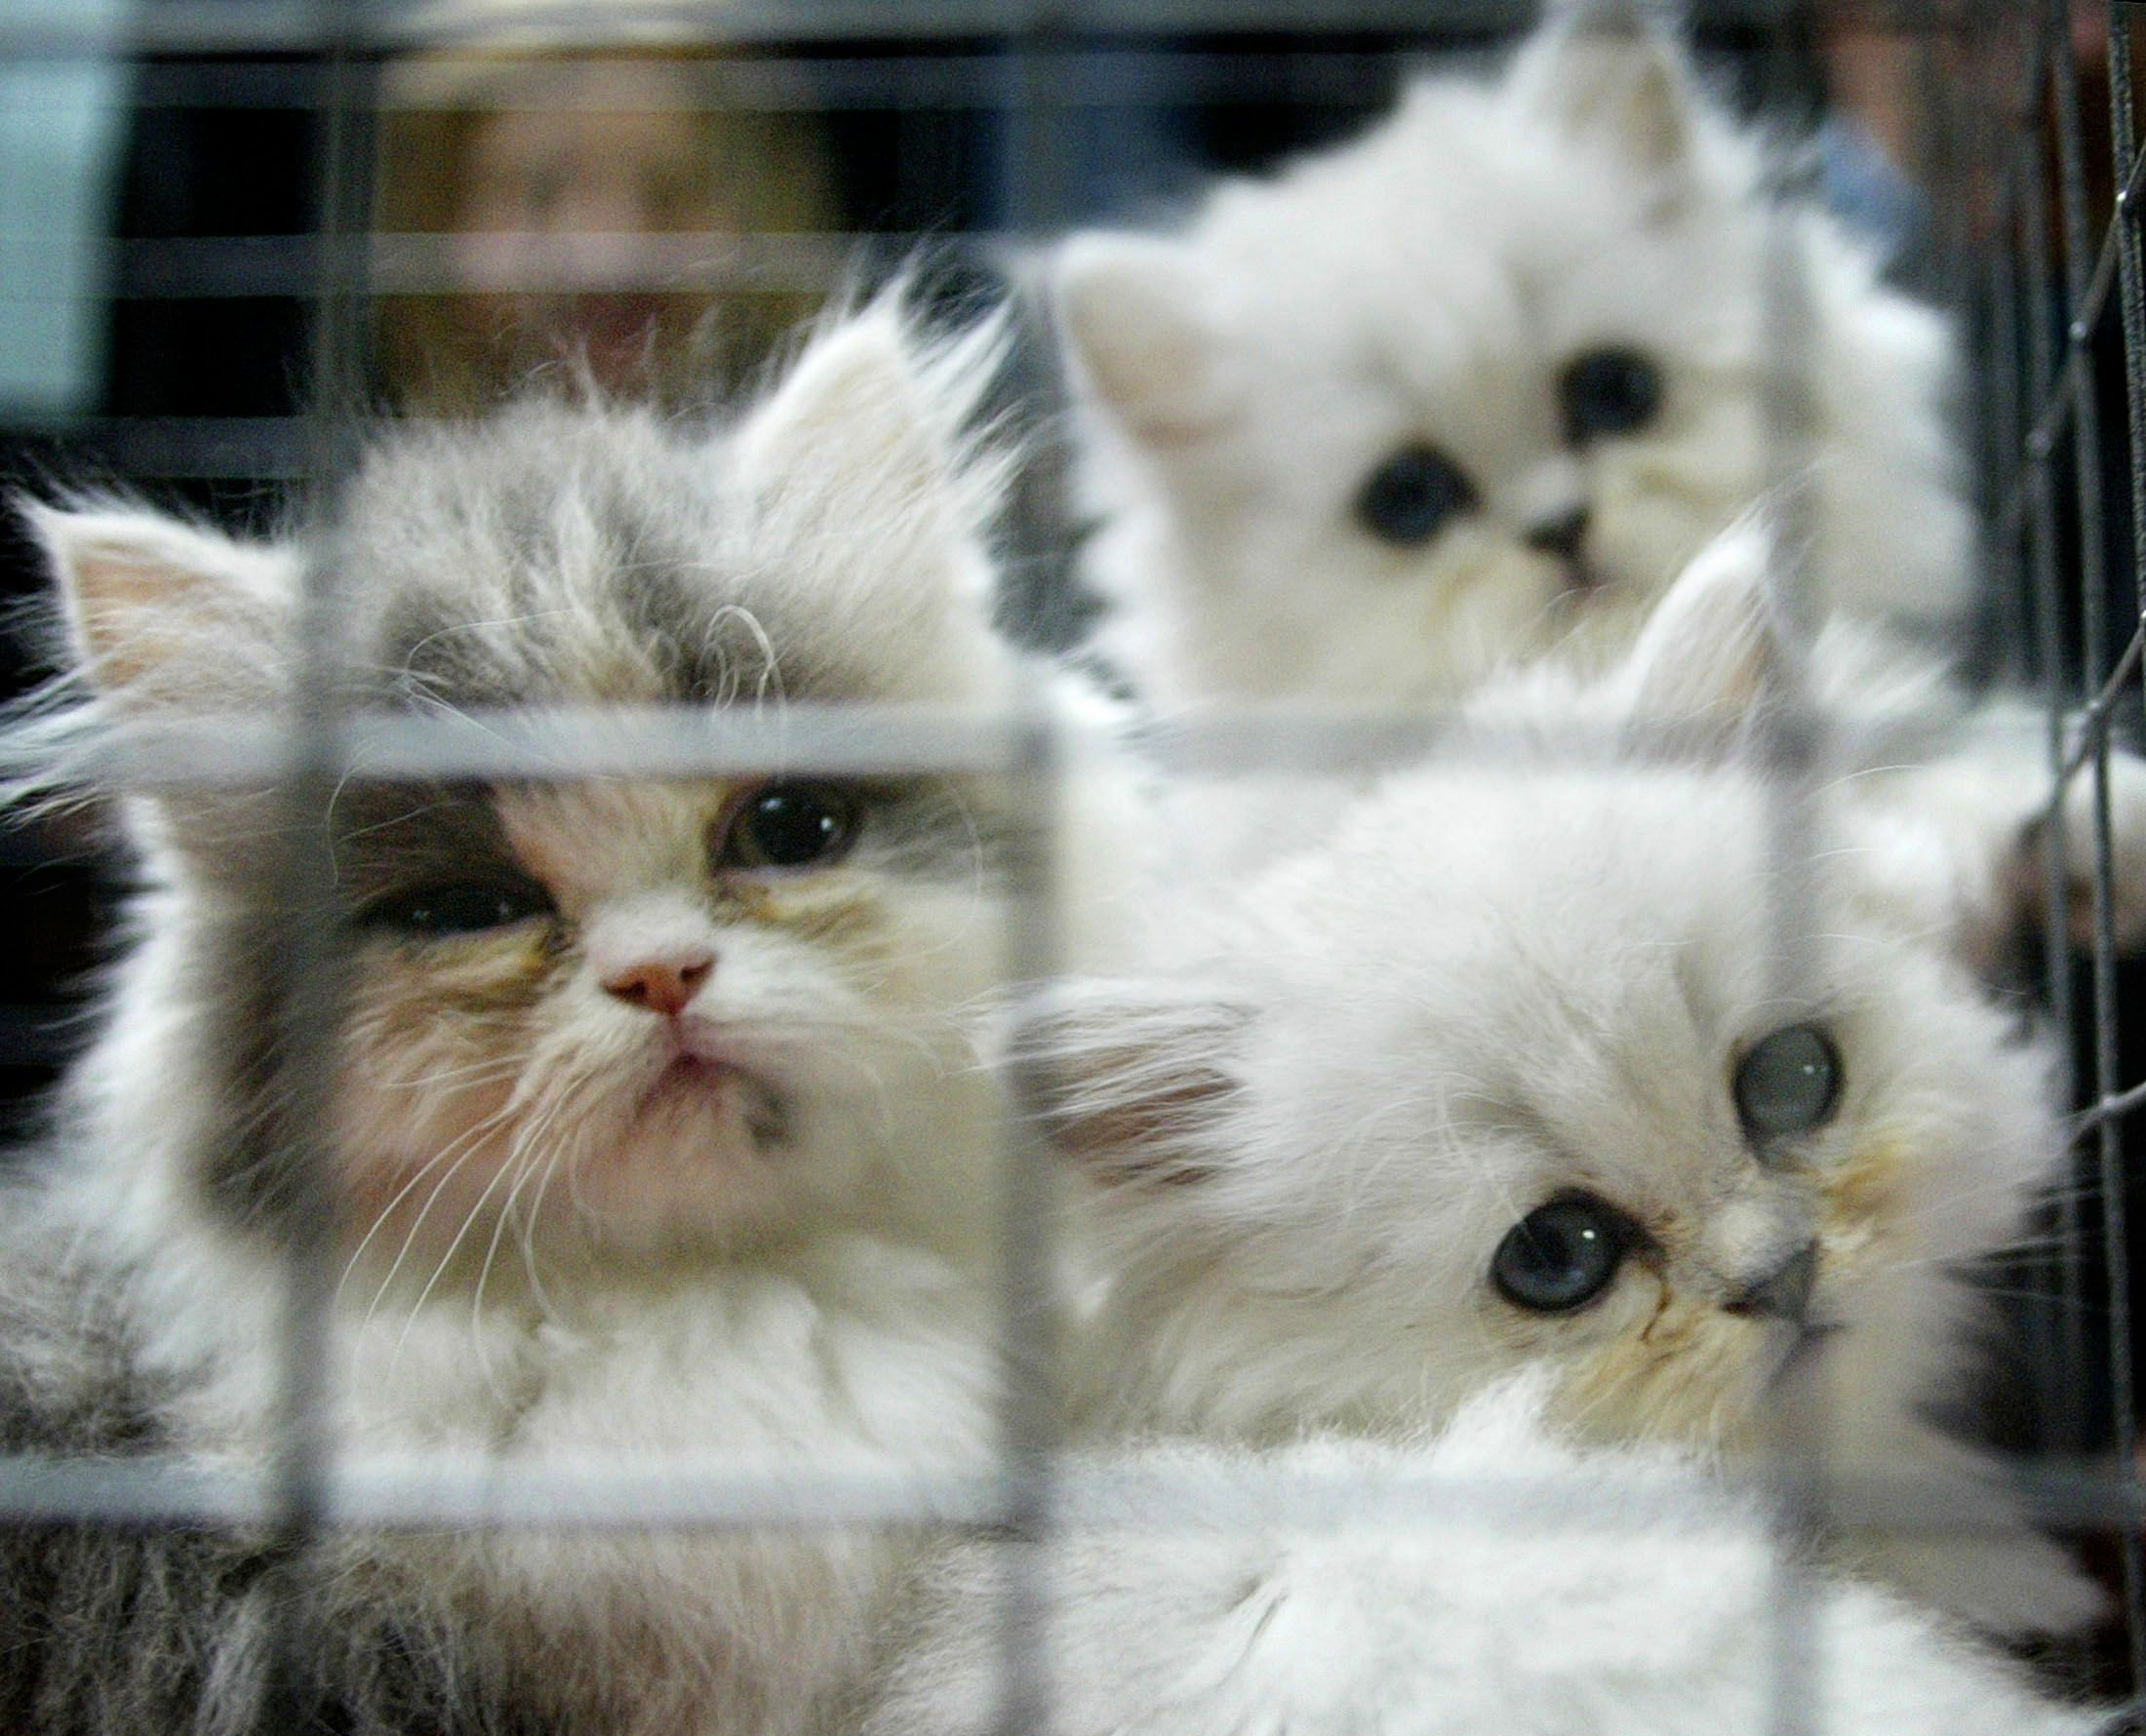 Kittens sold for dog fights